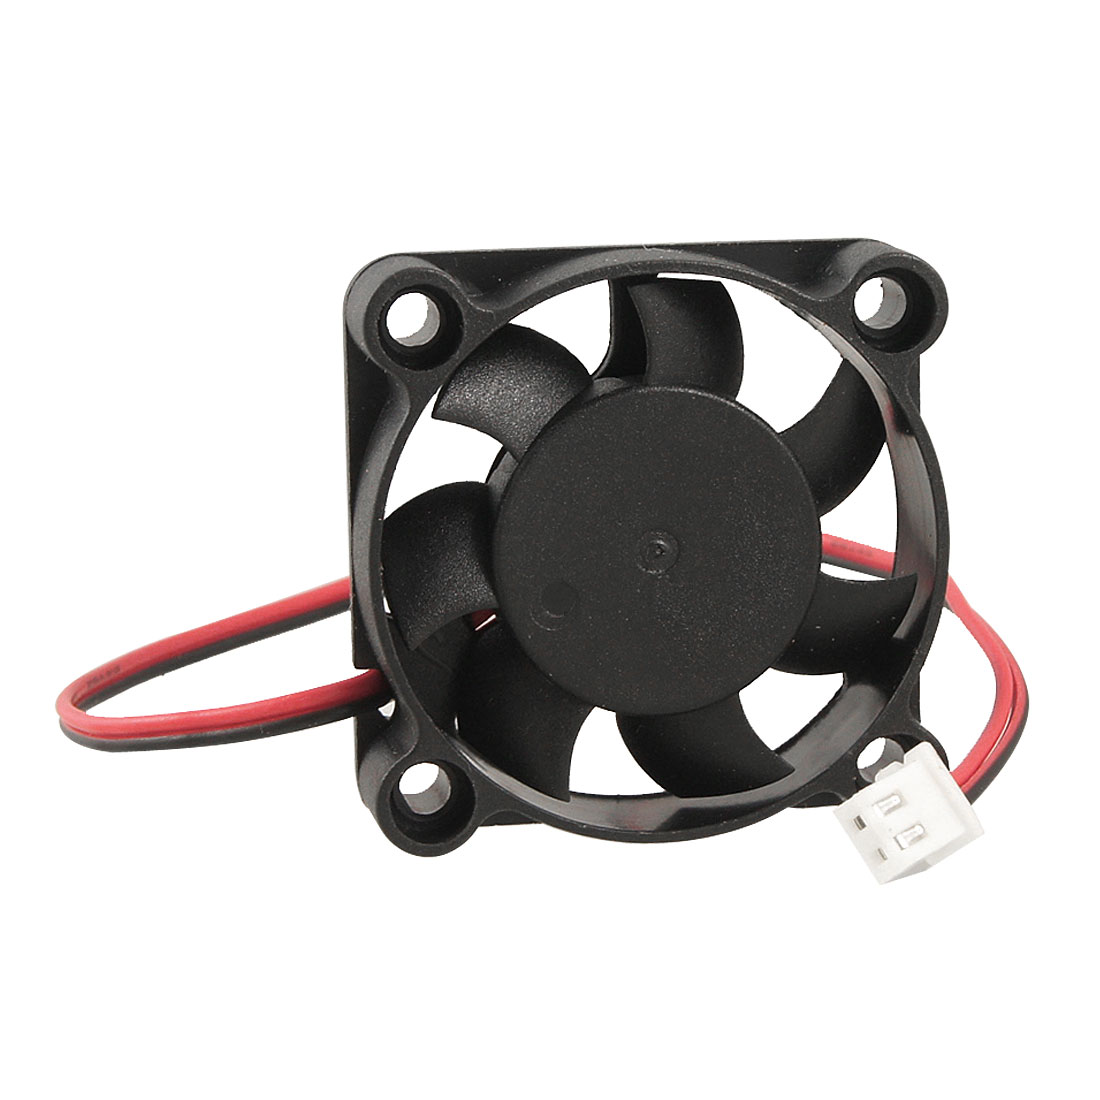 DC 24V 40 x 40 x 10mm 4010 7 Fans Brushless Cooling Fan